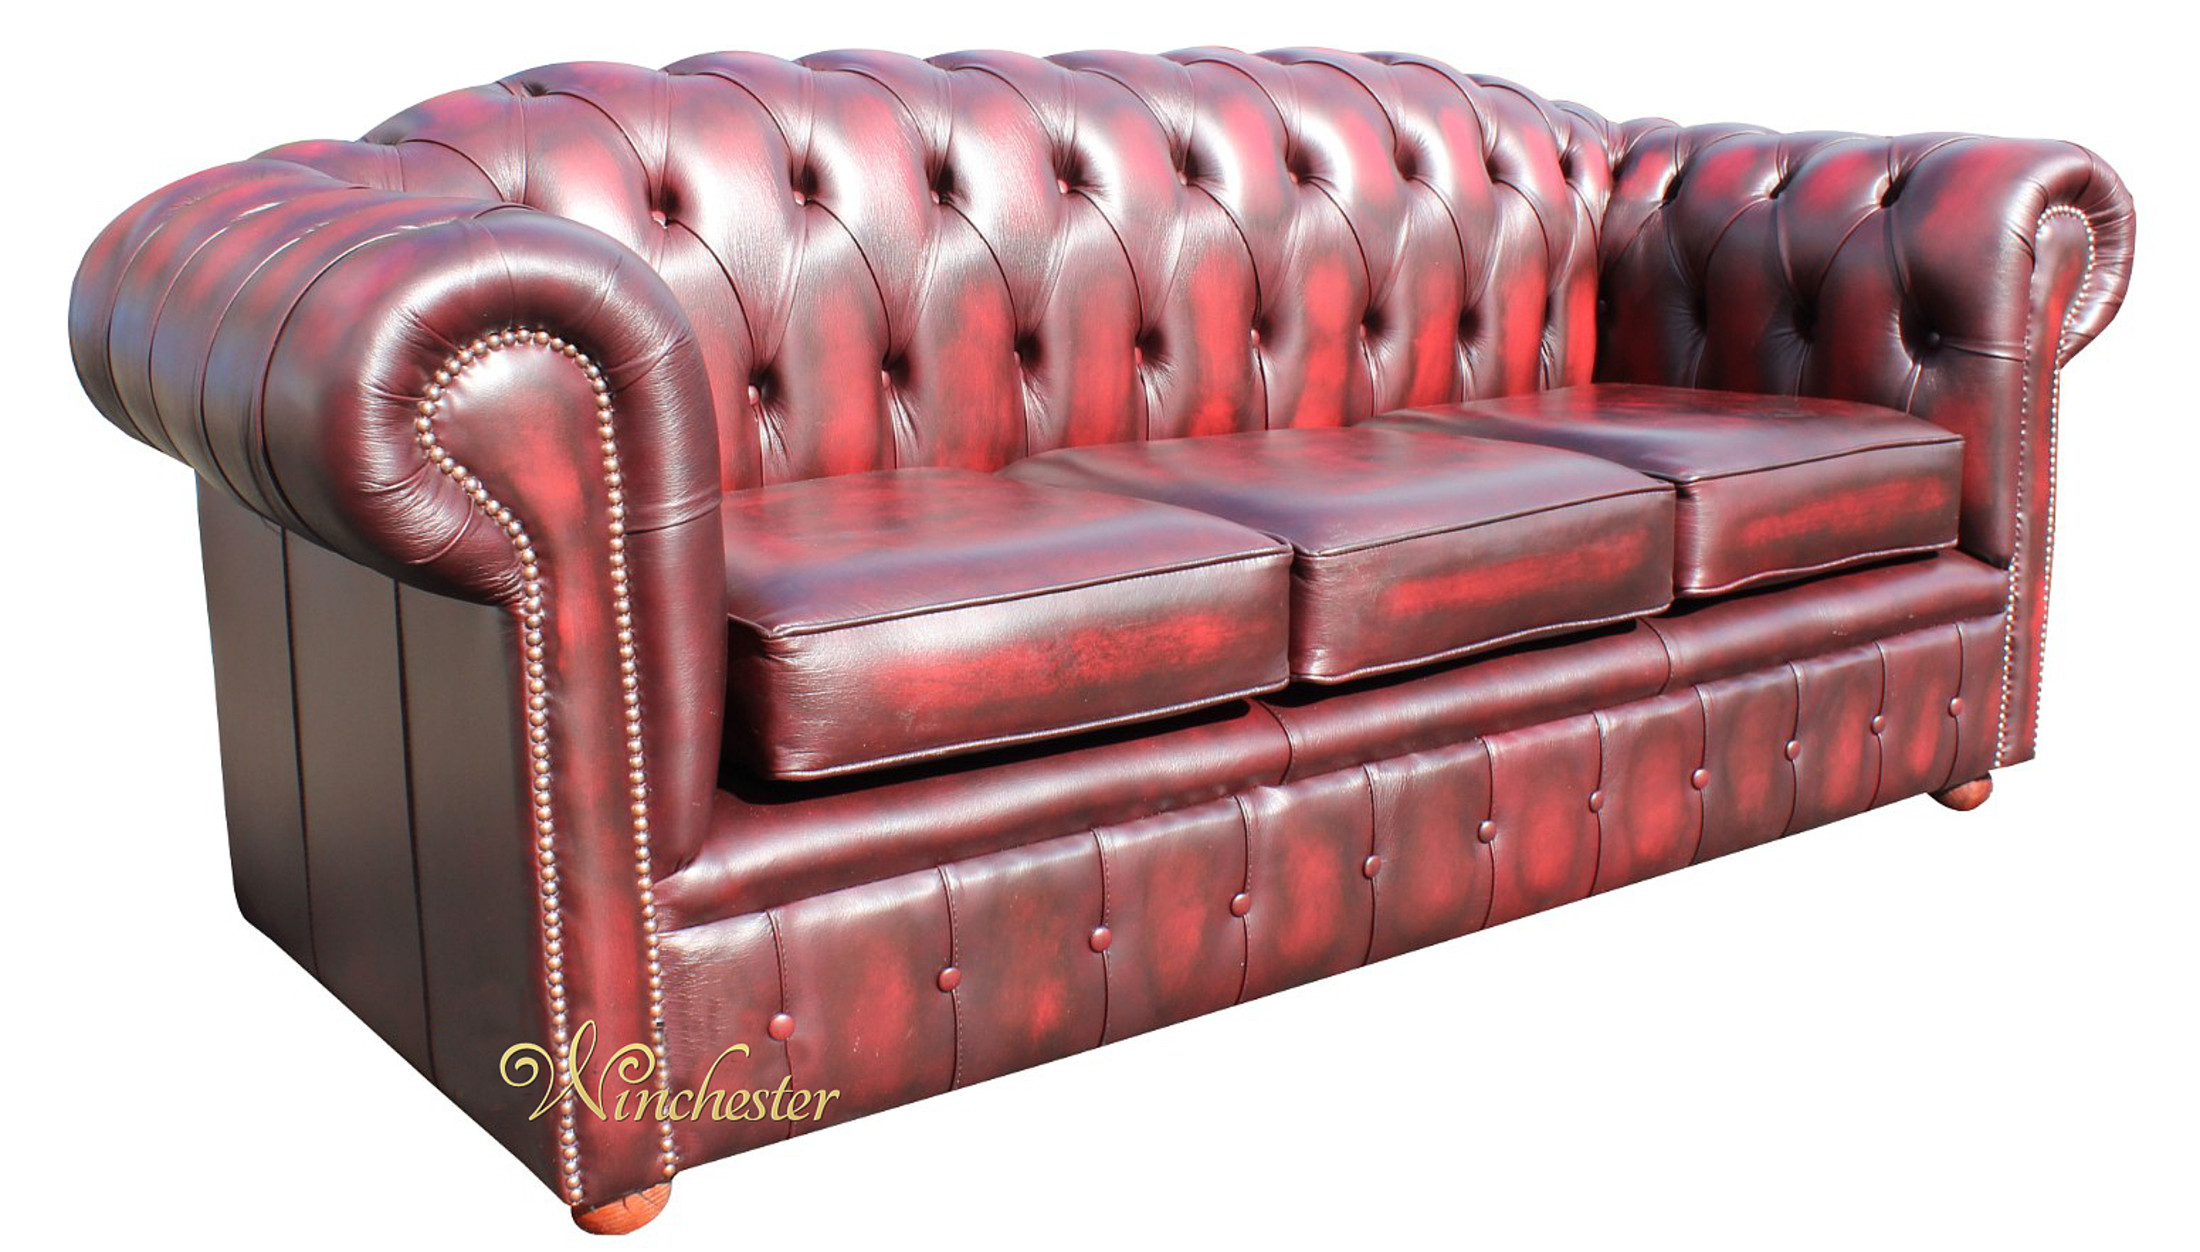 Ordinaire ... Chesterfield Royale 3 Seater Sofa Settee Antique Oxblood